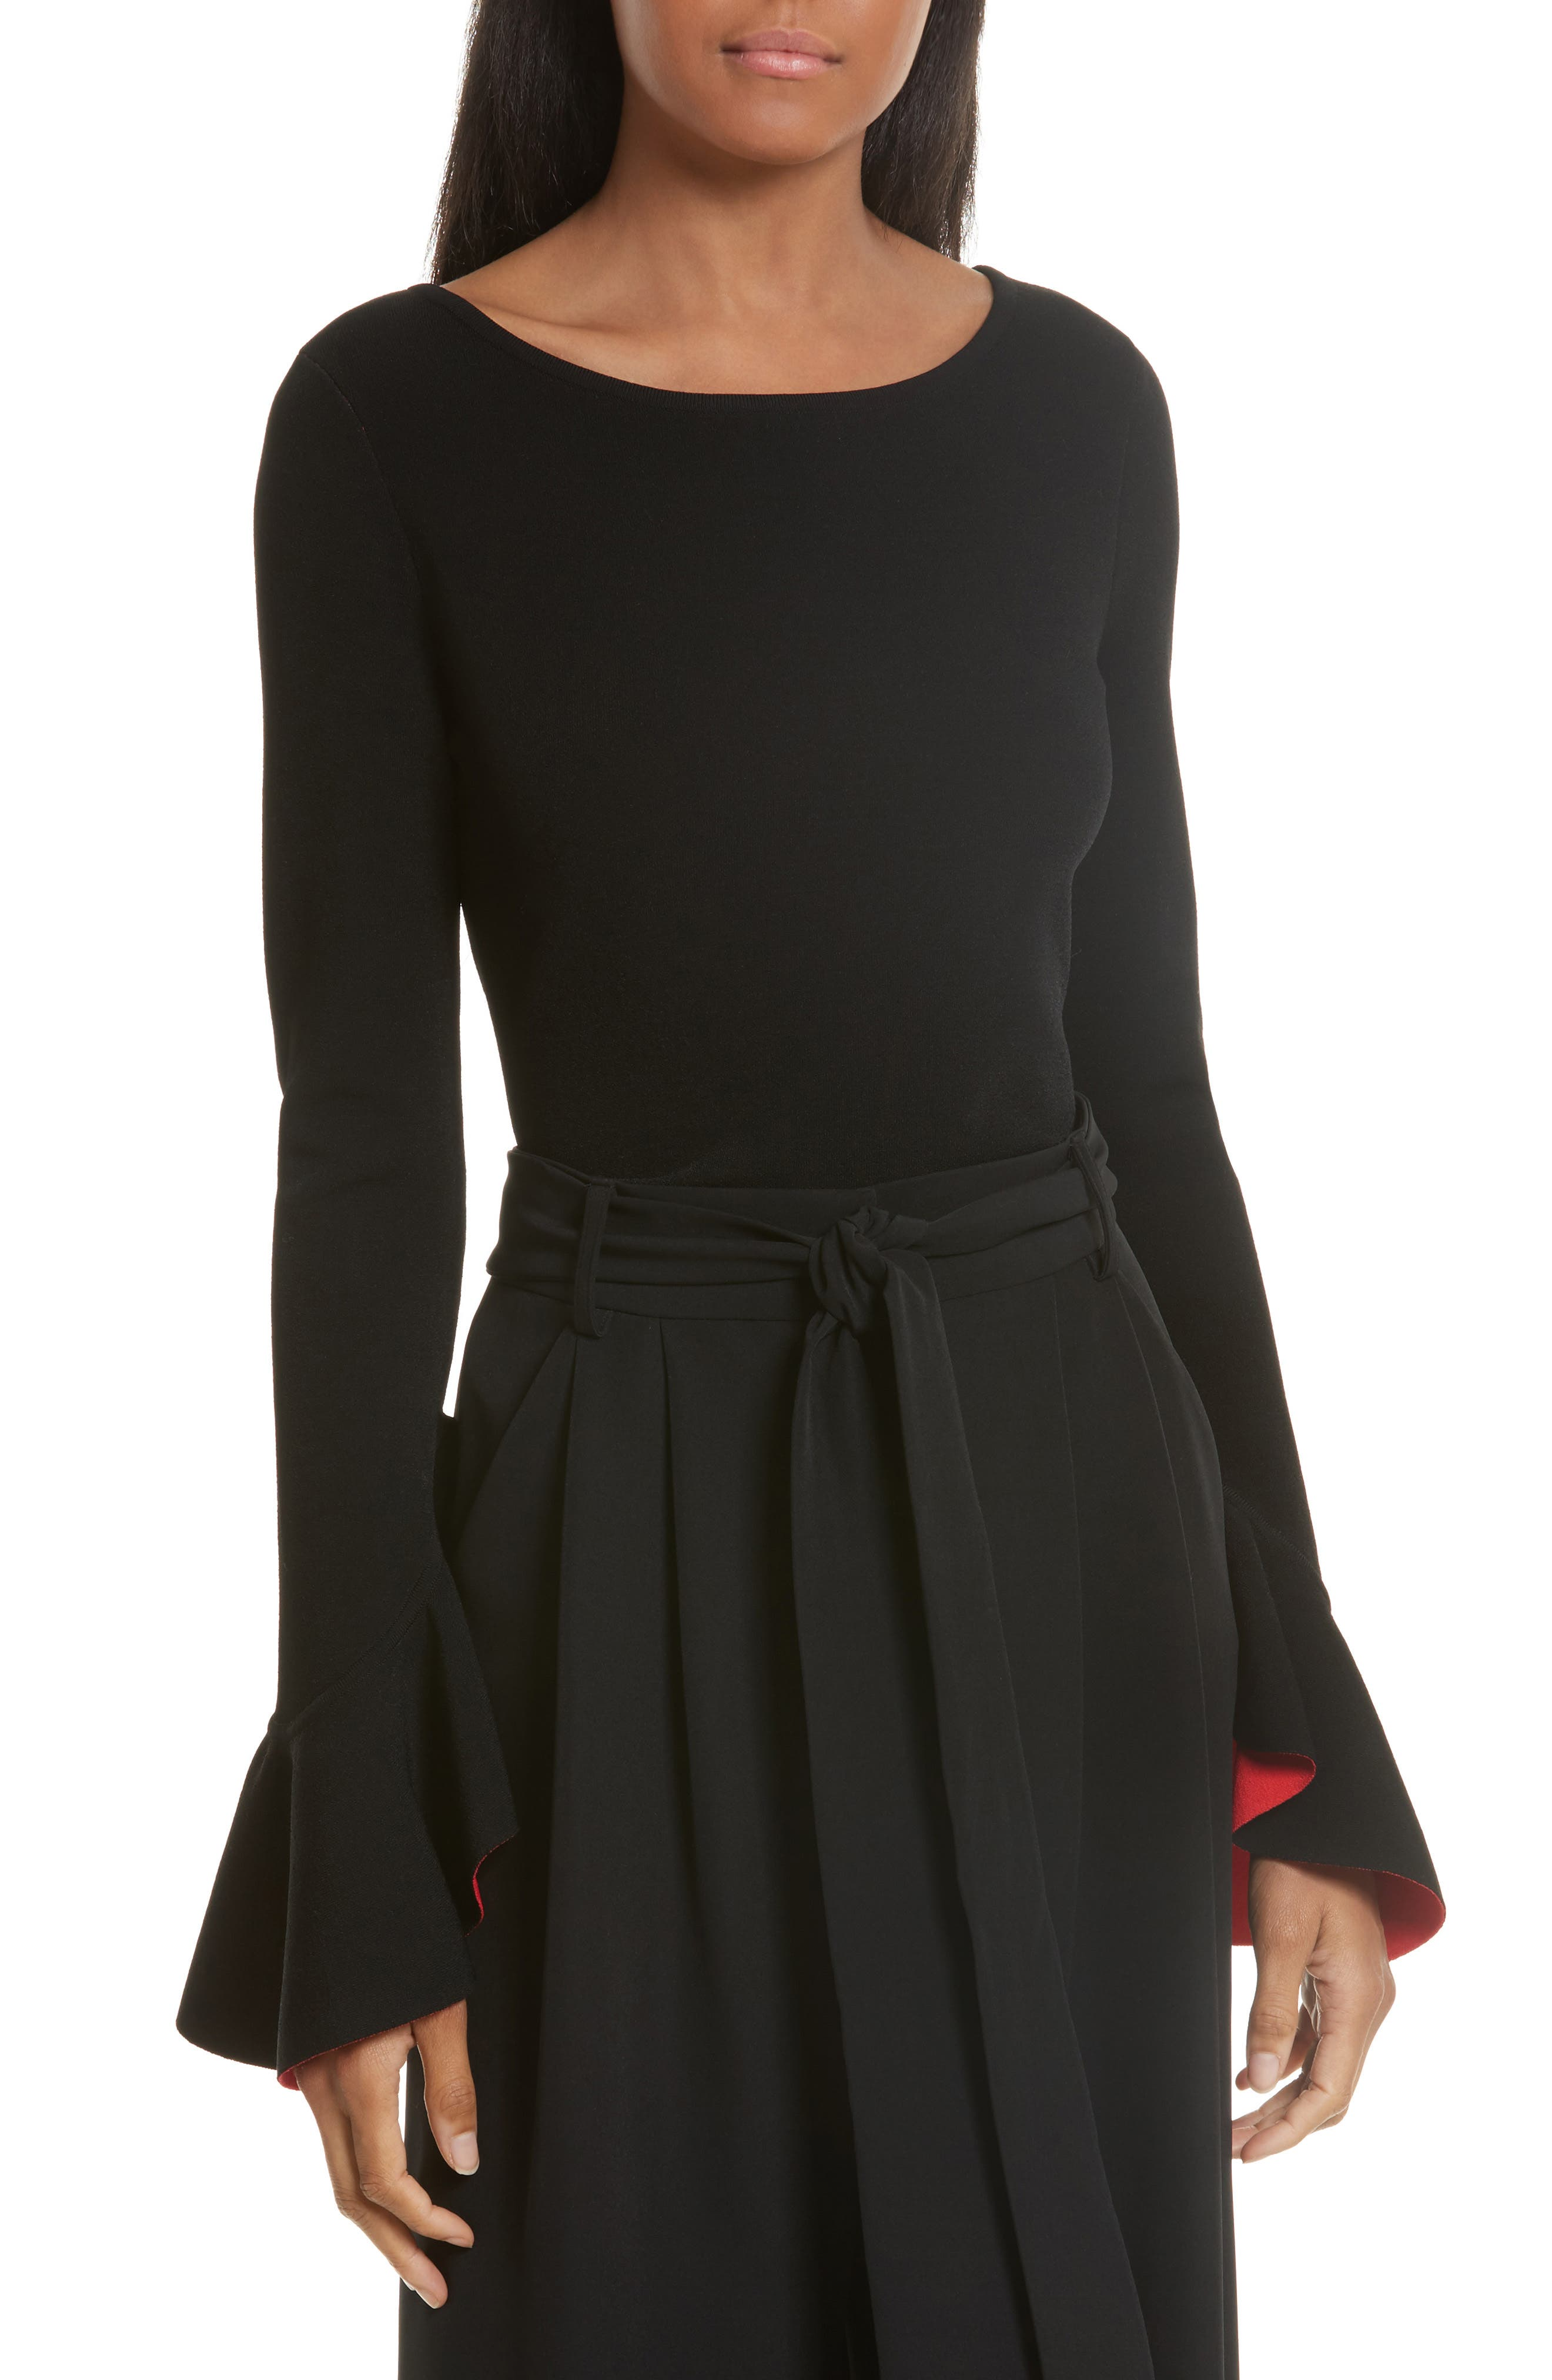 Milly Contrast Lined Bell Sleeve Top